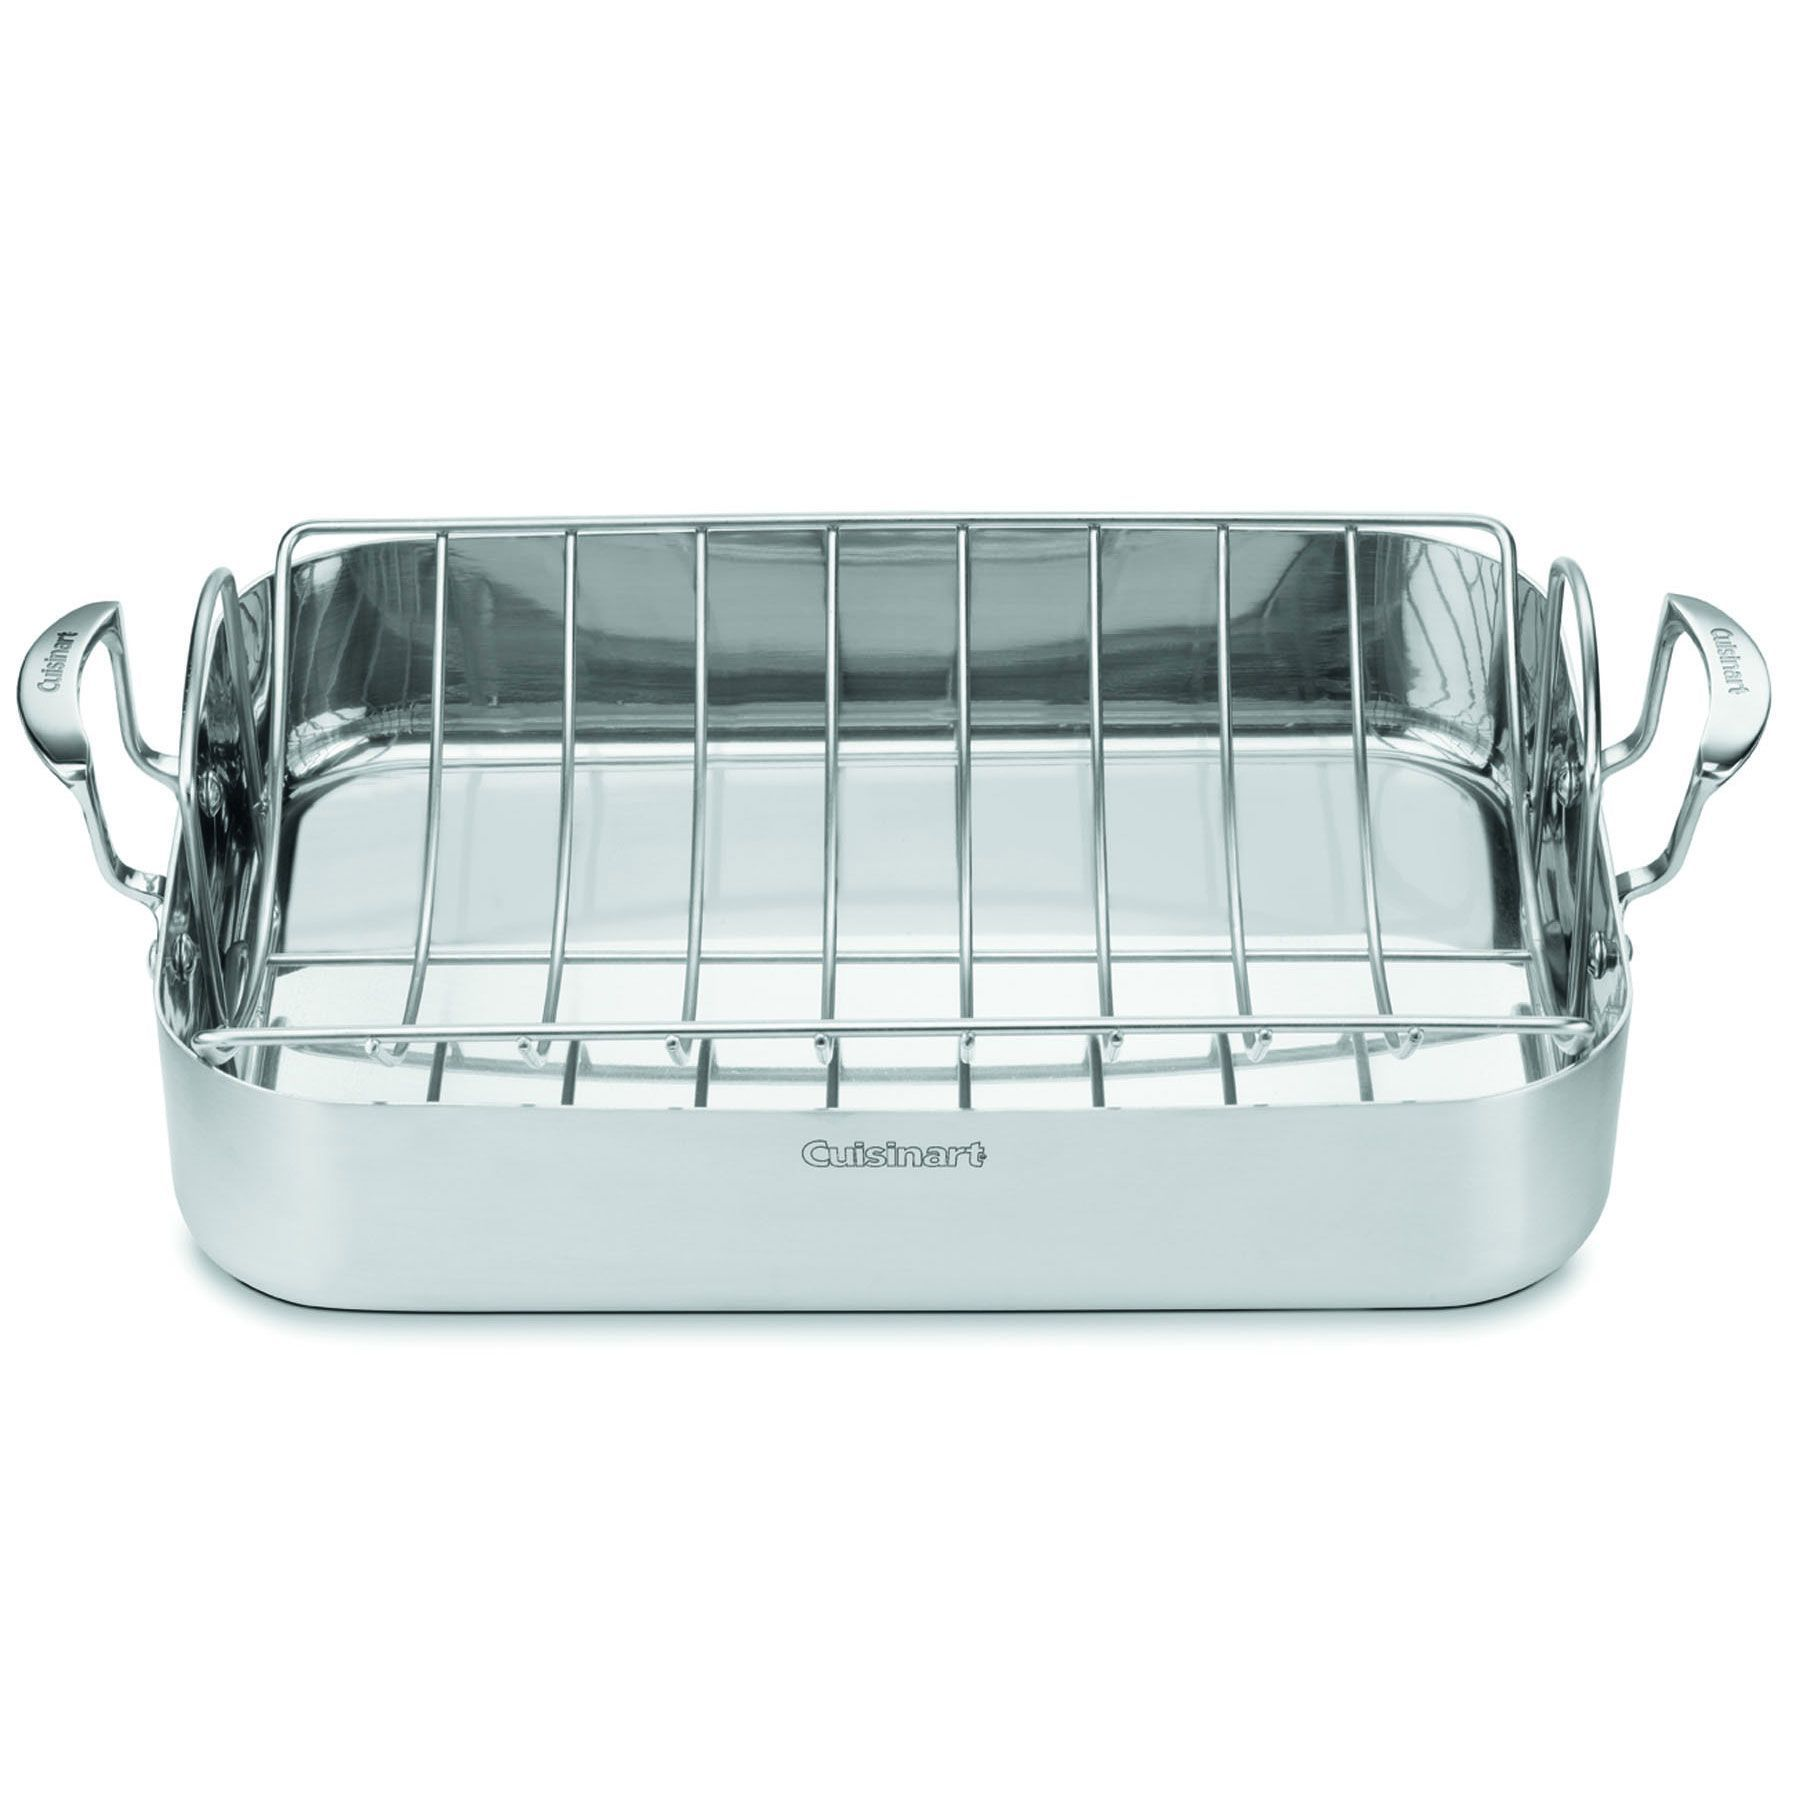 Cuisinart Dish Rack Adorable Cuisinart Multiclad Pro Stainless 16Inch Rectangular Roaster With Decorating Inspiration